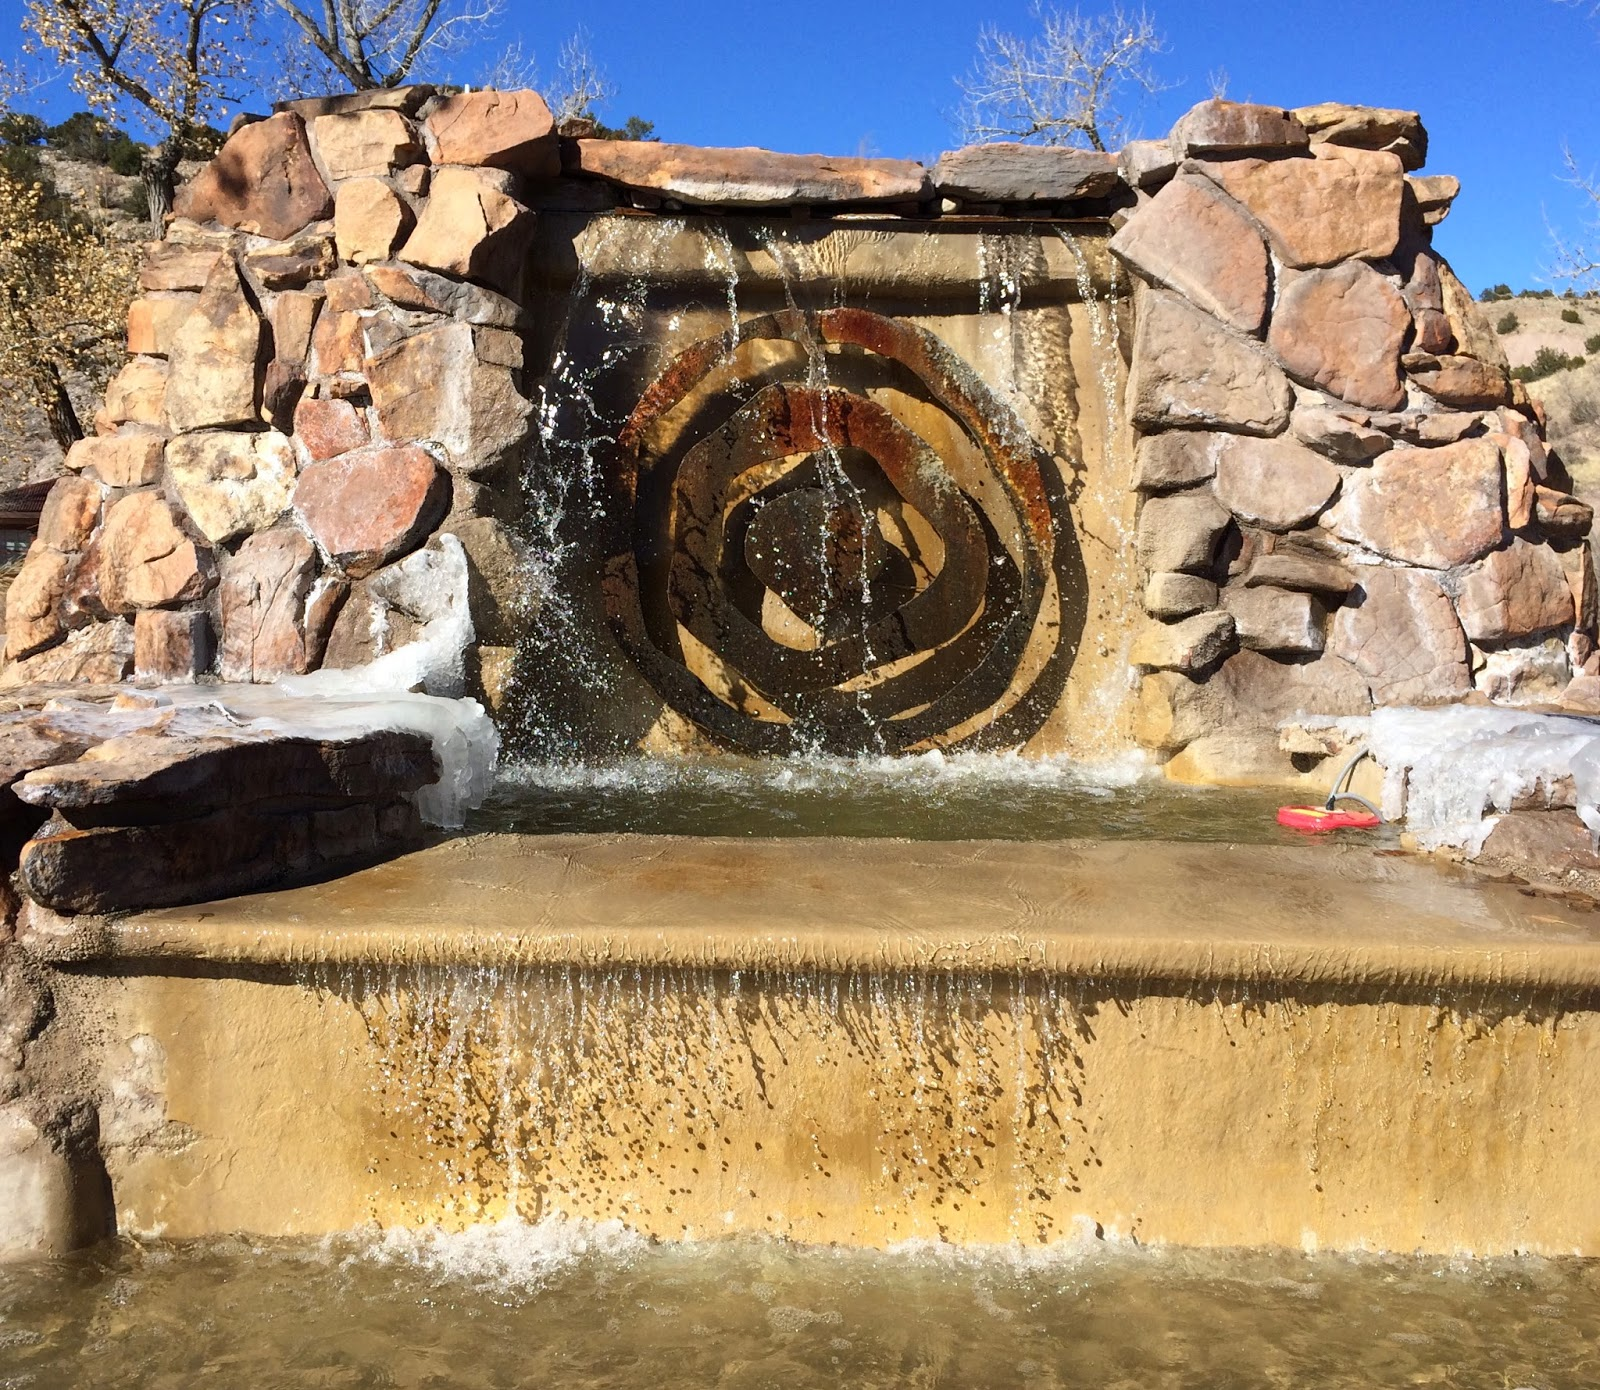 catholic single men in ojo caliente Ojo caliente mineral springs resort and house is a single room with several your disappointing recent visit to ojo caliente mineral.